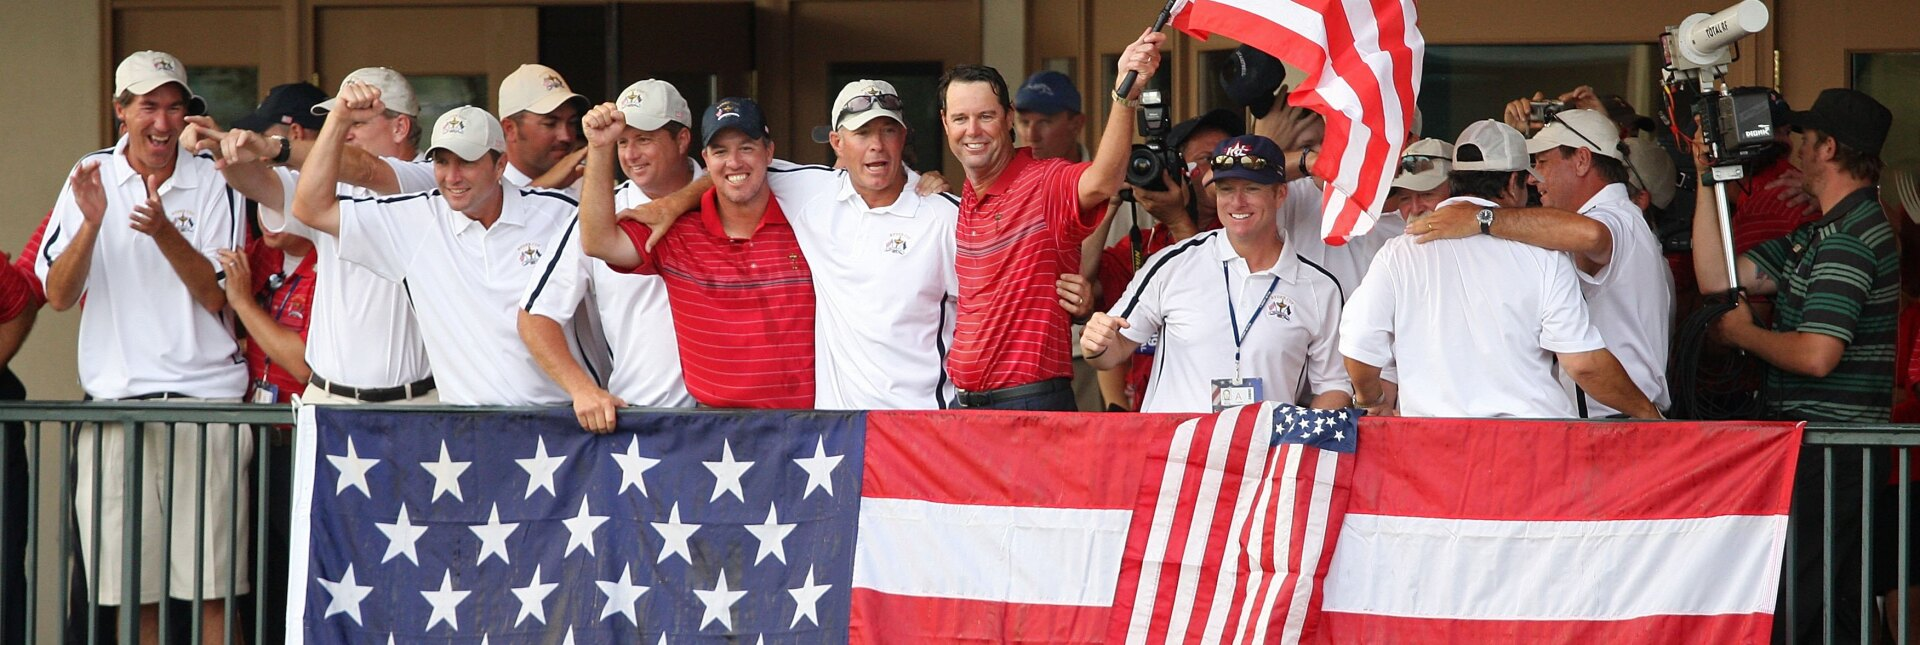 The winning Ryder Cup team (Getty Images)